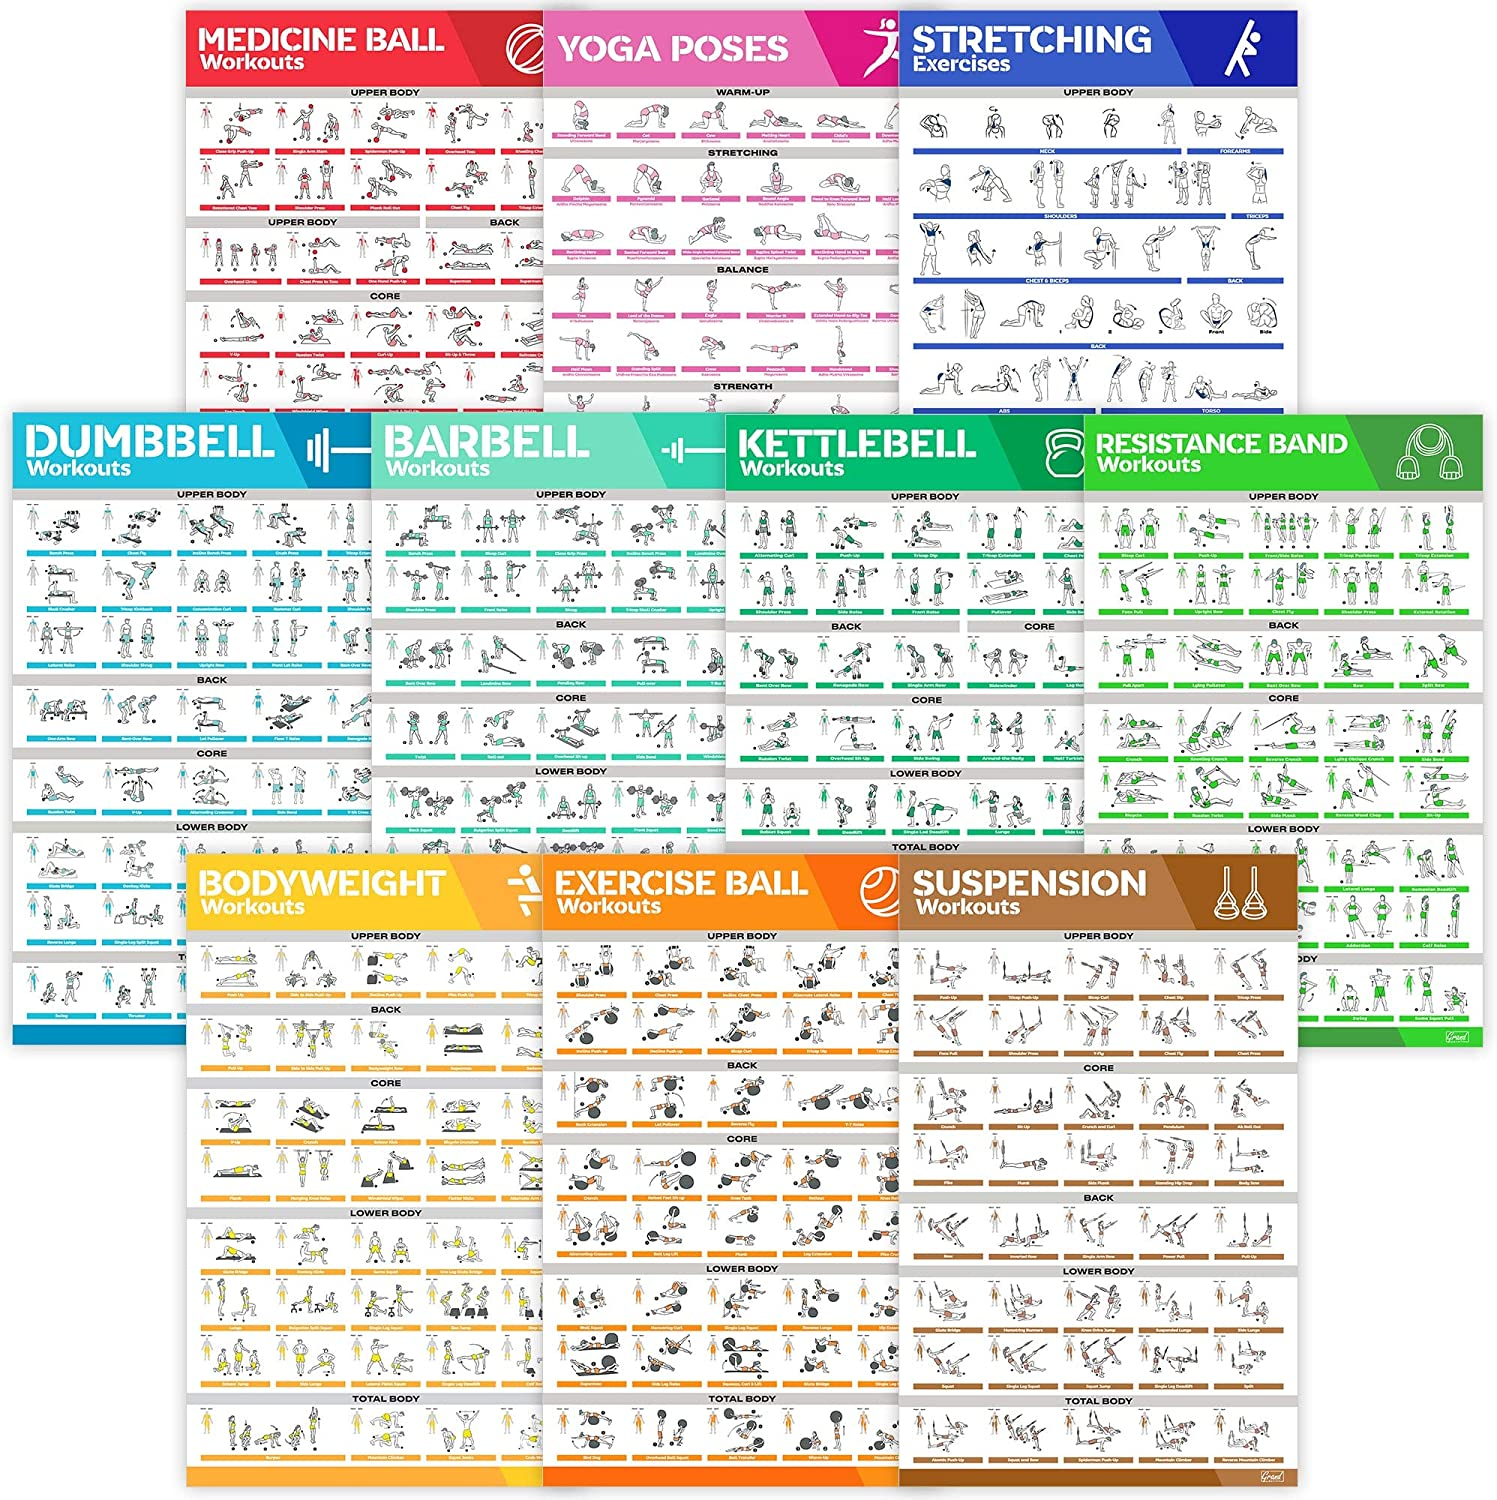 [10-PACK] Laminated Large Workout Poster Set - Perfect Workout Posters For Home Gym - Exercise Charts Incl. Dumbbell, Yoga Poses, Resistance Band, Kettlebell, Stretching & More Fitness Gym Posters